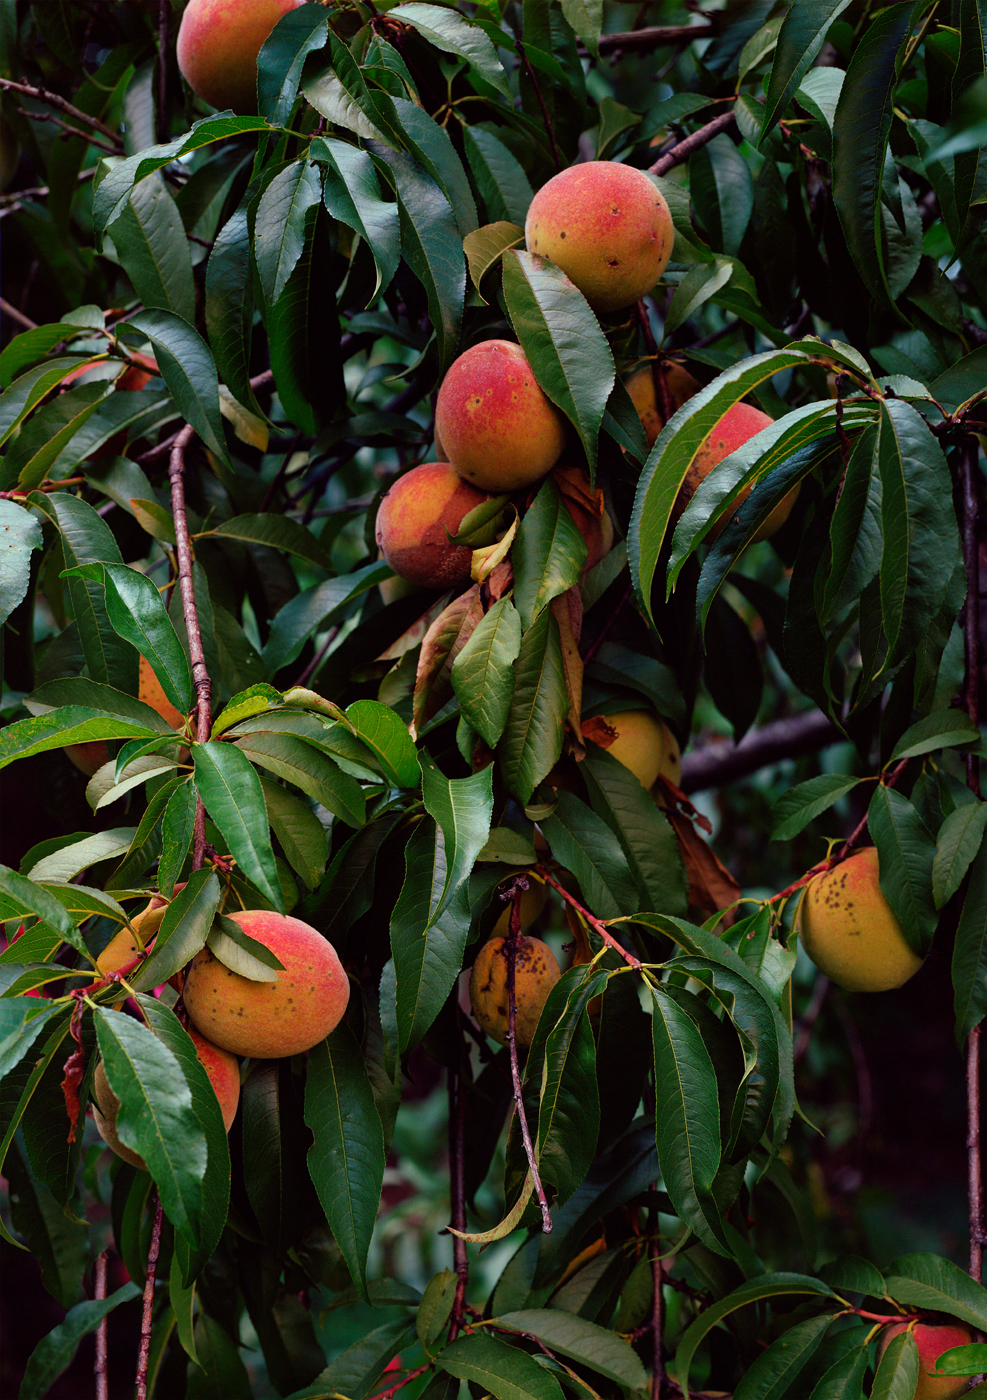 Untitled (Peach Tree), 2016  50 x 35.25 inches (127 x 89.54 cm)  Large Format Negative, Archival Inkjet Print